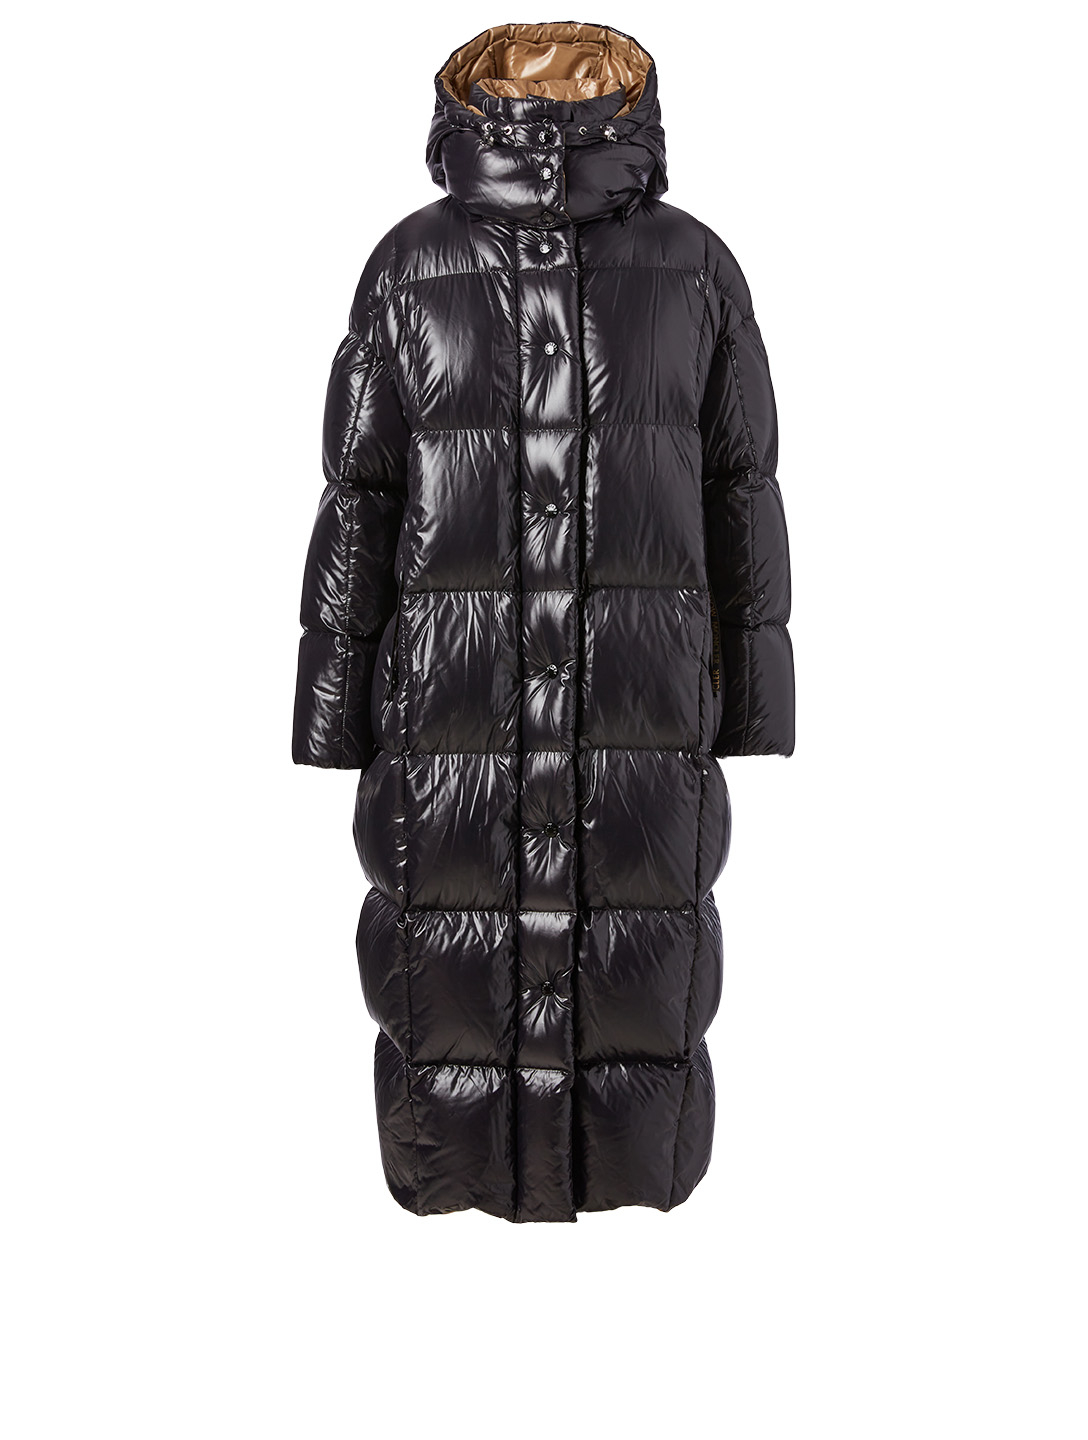 MONCLER Parnaiba Long Down Coat Women's Black